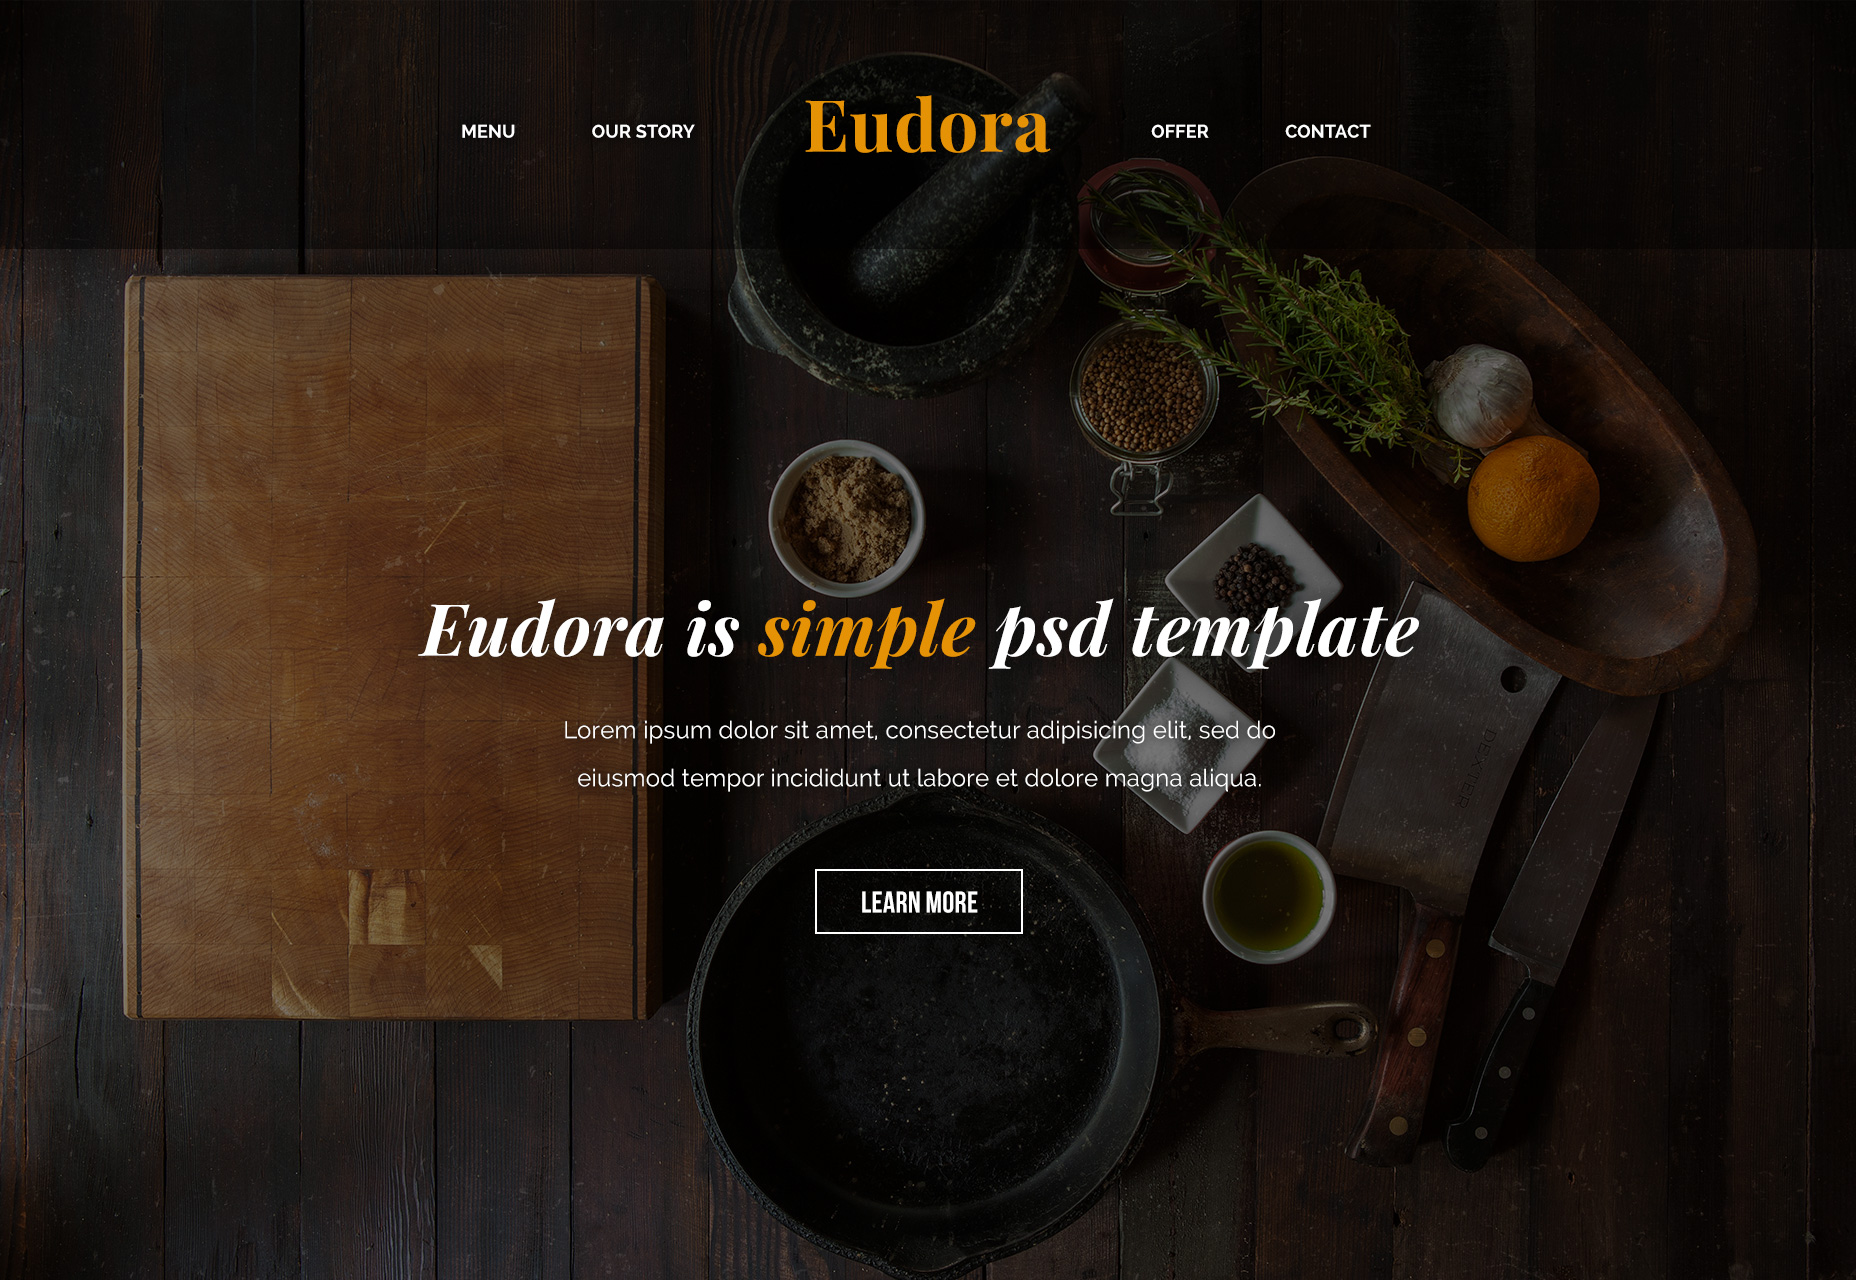 Eudora: Food-related PSD Web Template